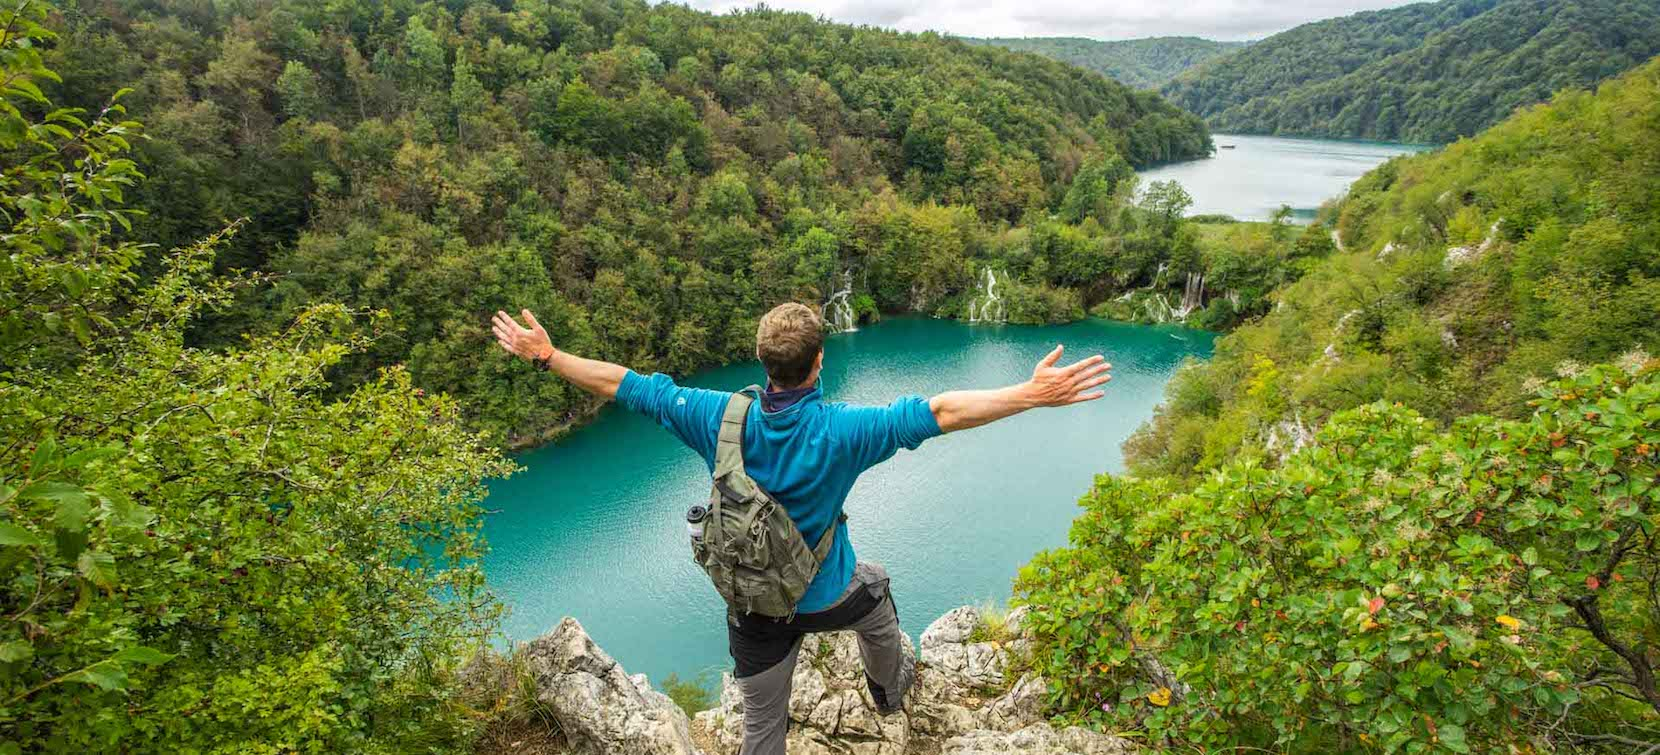 8 Day  Croatia hiking holiday an unforgettable hiking adventure. SEPTEMBER